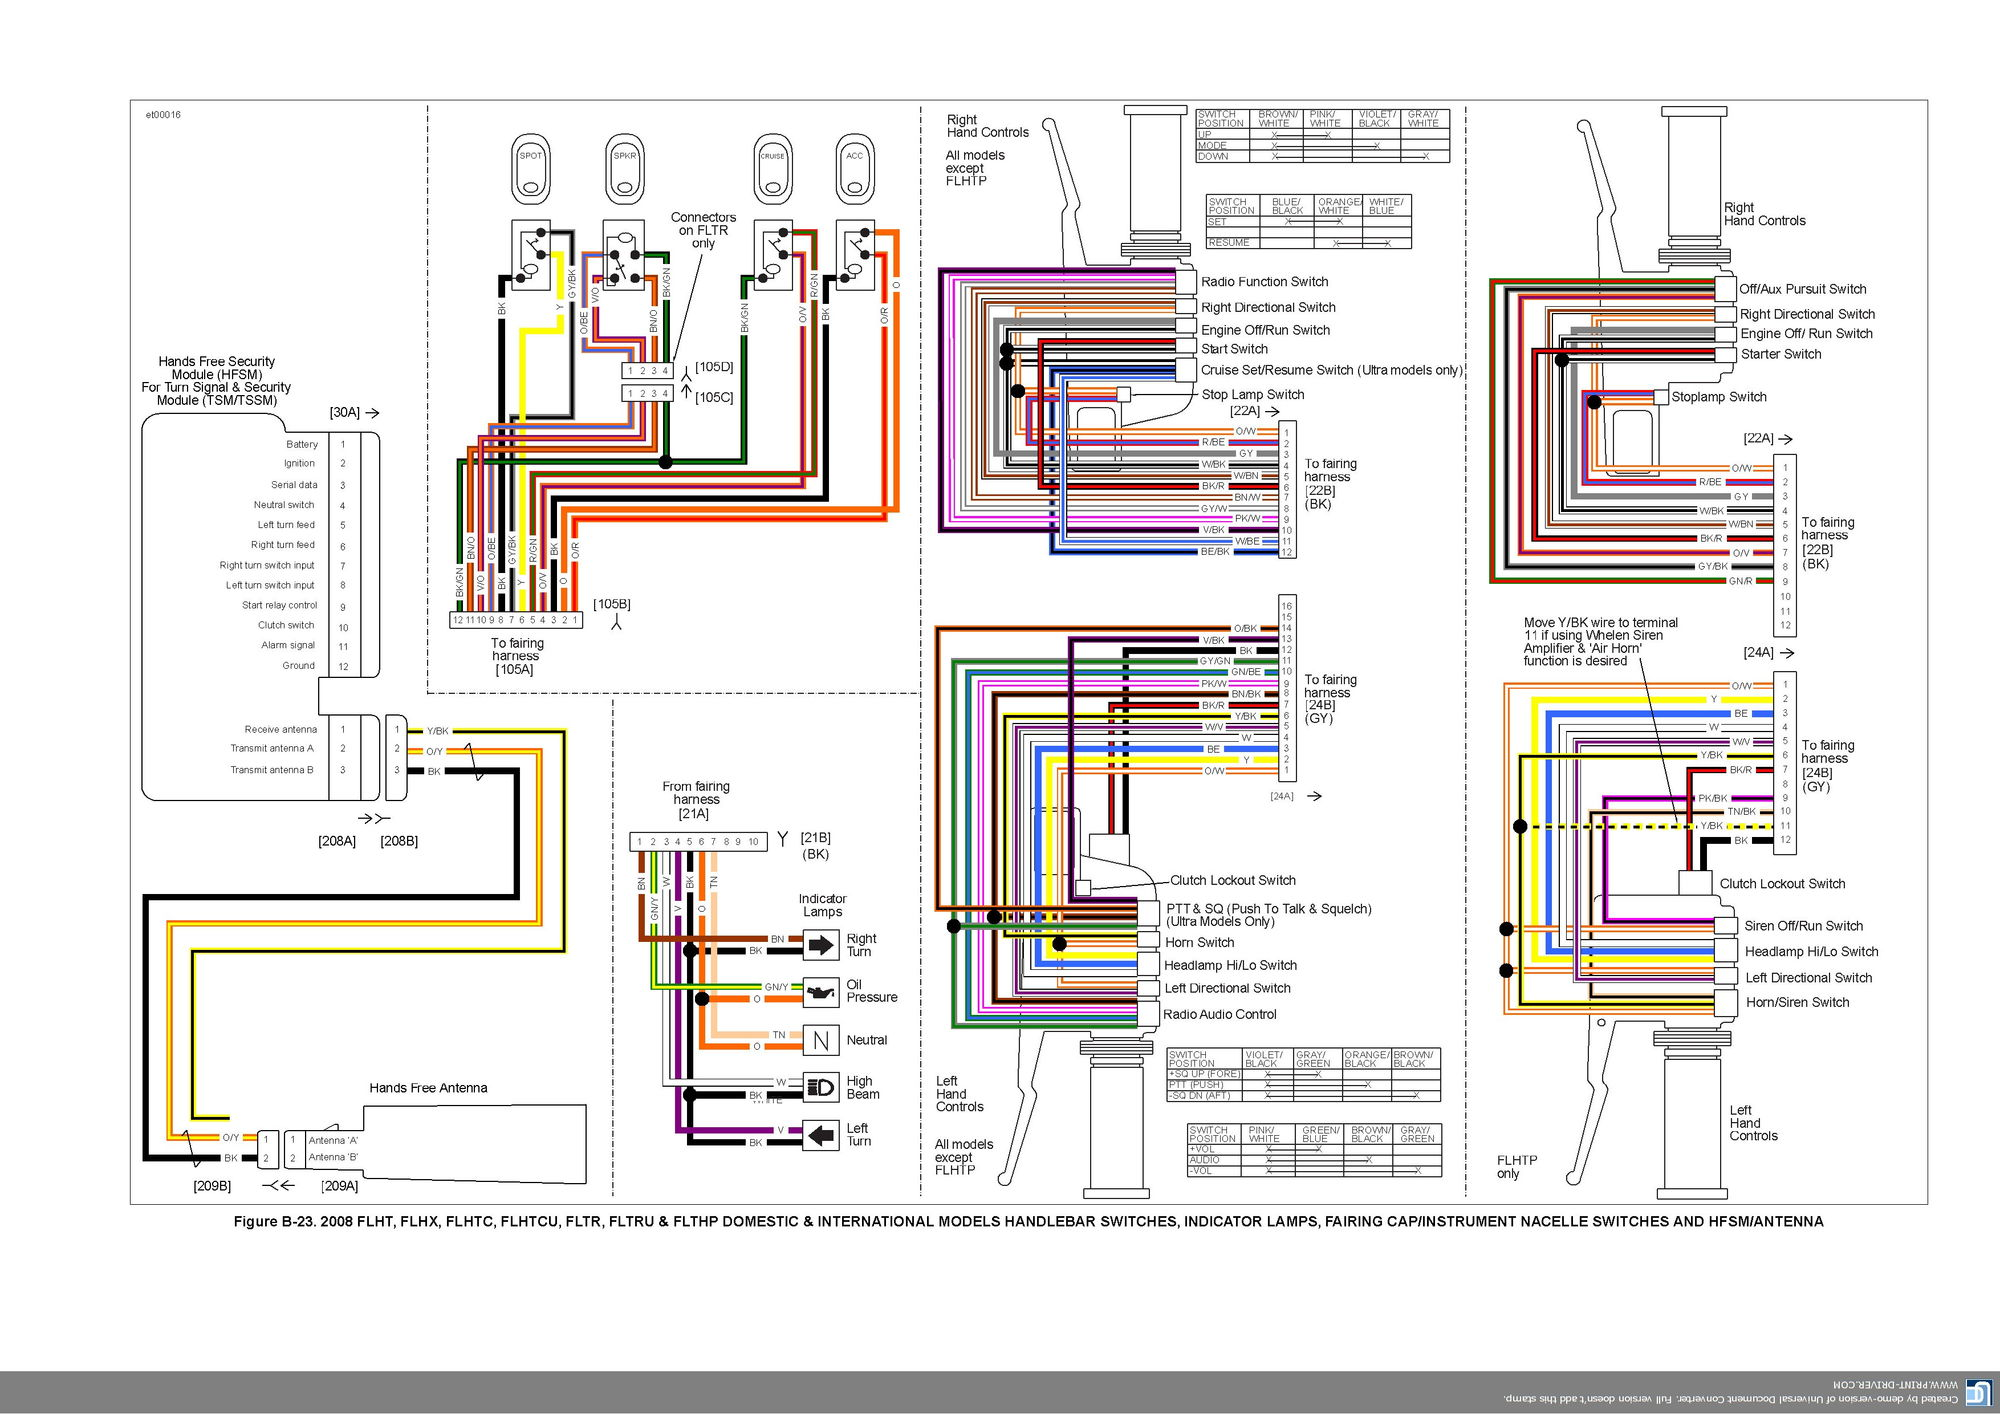 2010 Ultra Classic Wiring Diagram Fuel Mileage Harley Davidson Relay Brake Light On An 06 Limited Review Diagrams